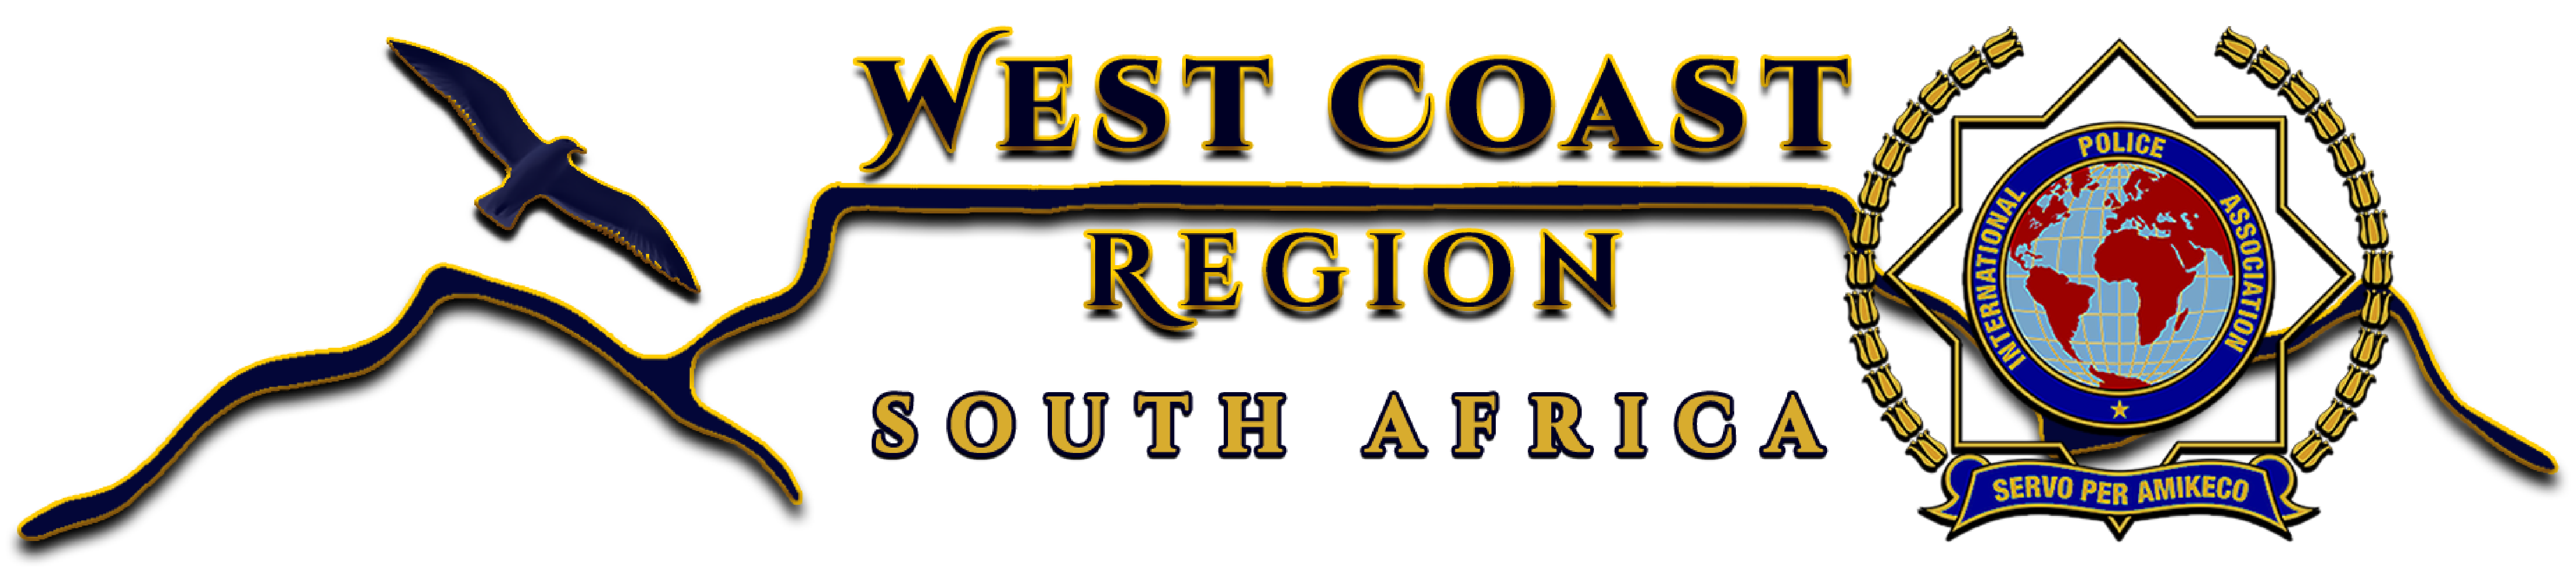 IPA West Coast Logo